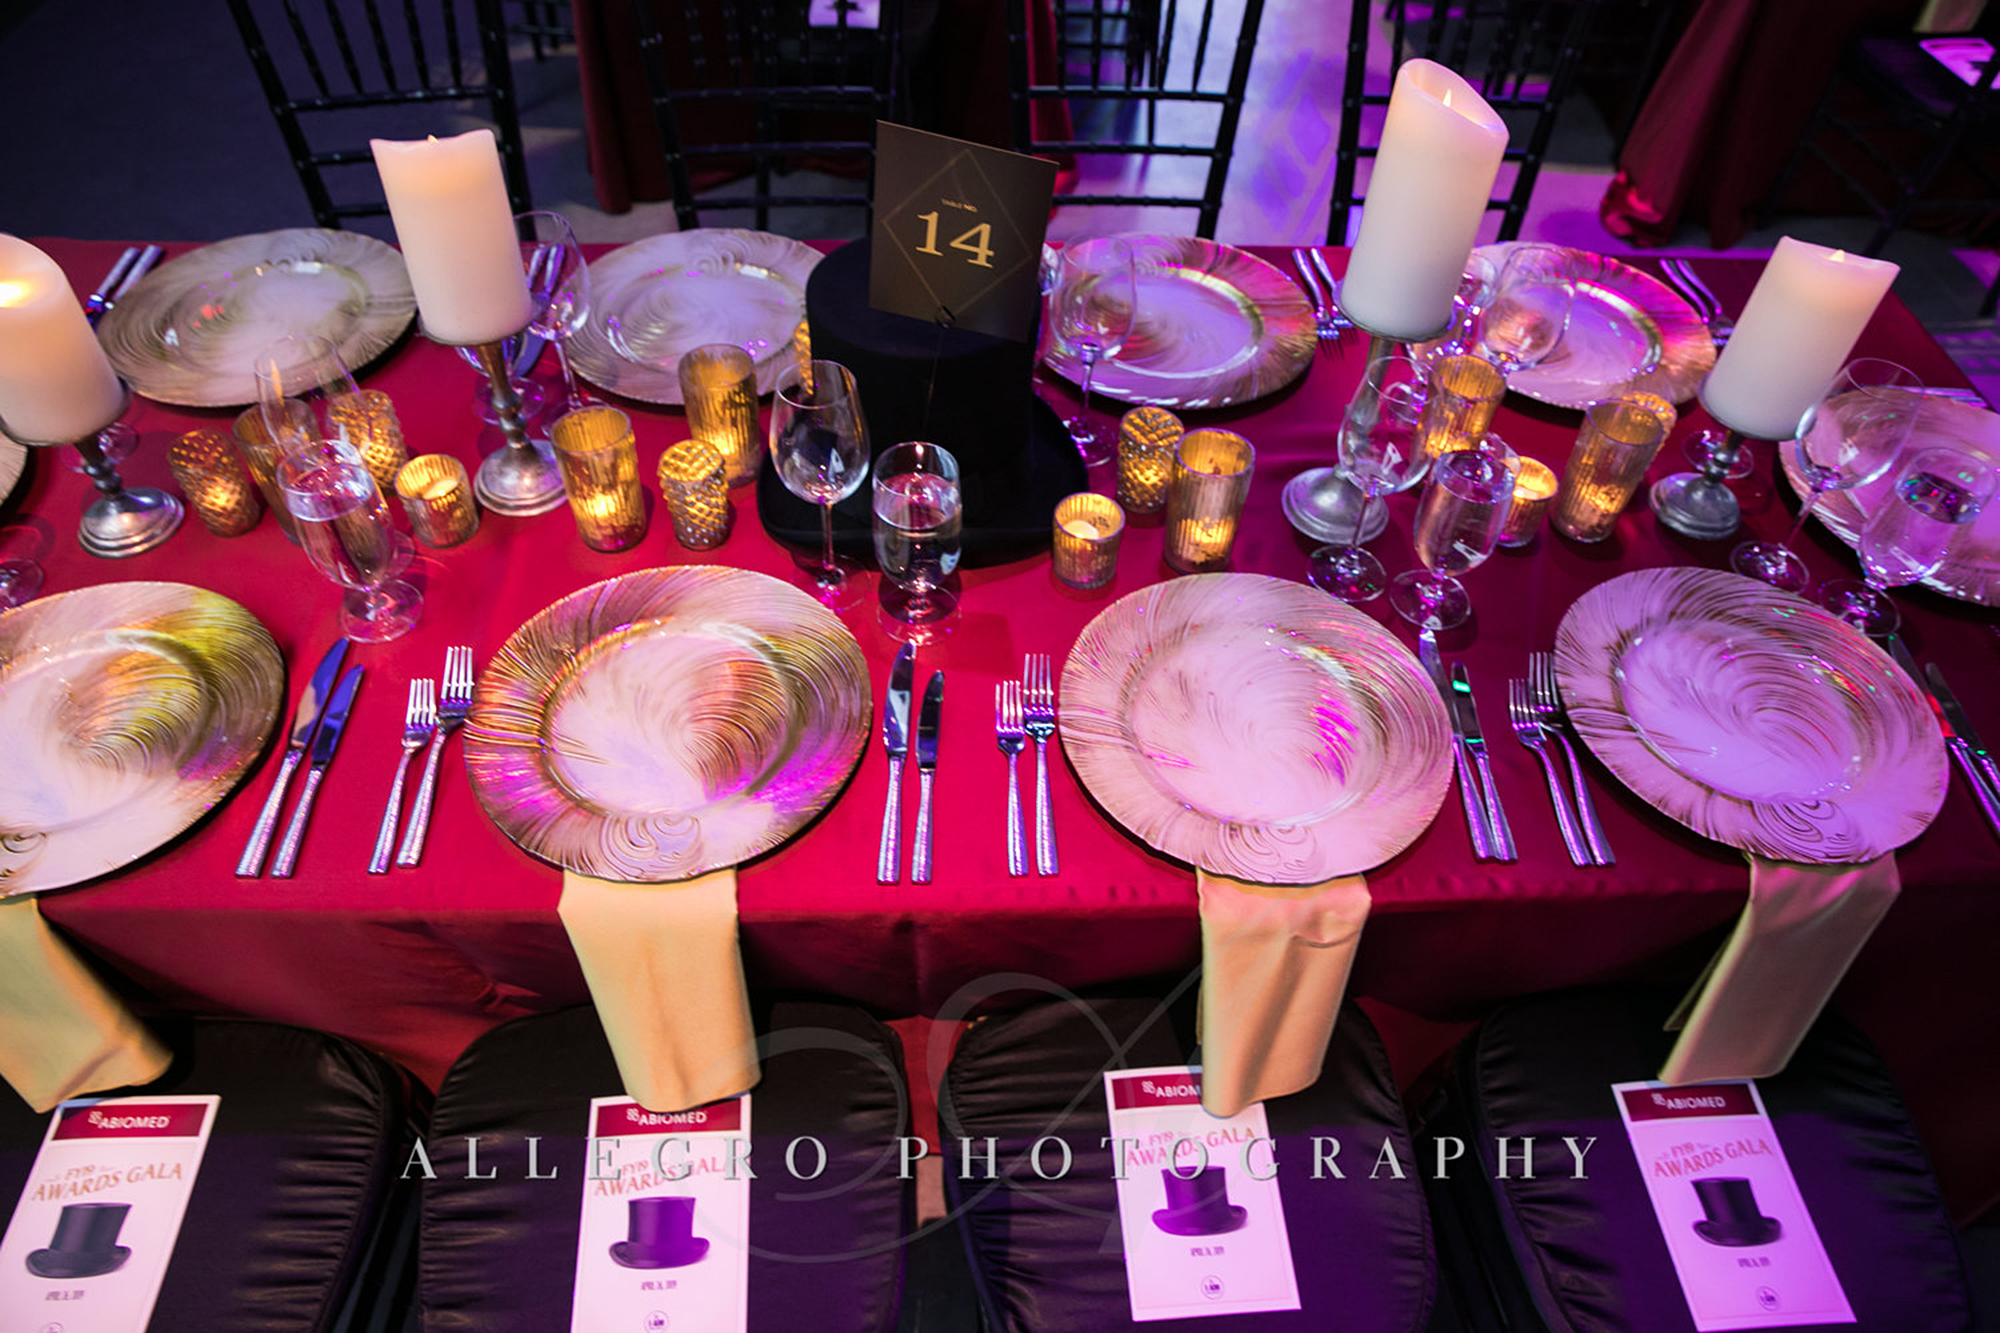 06_Corporate Awards Dinner Table Details_AE Events.jpg